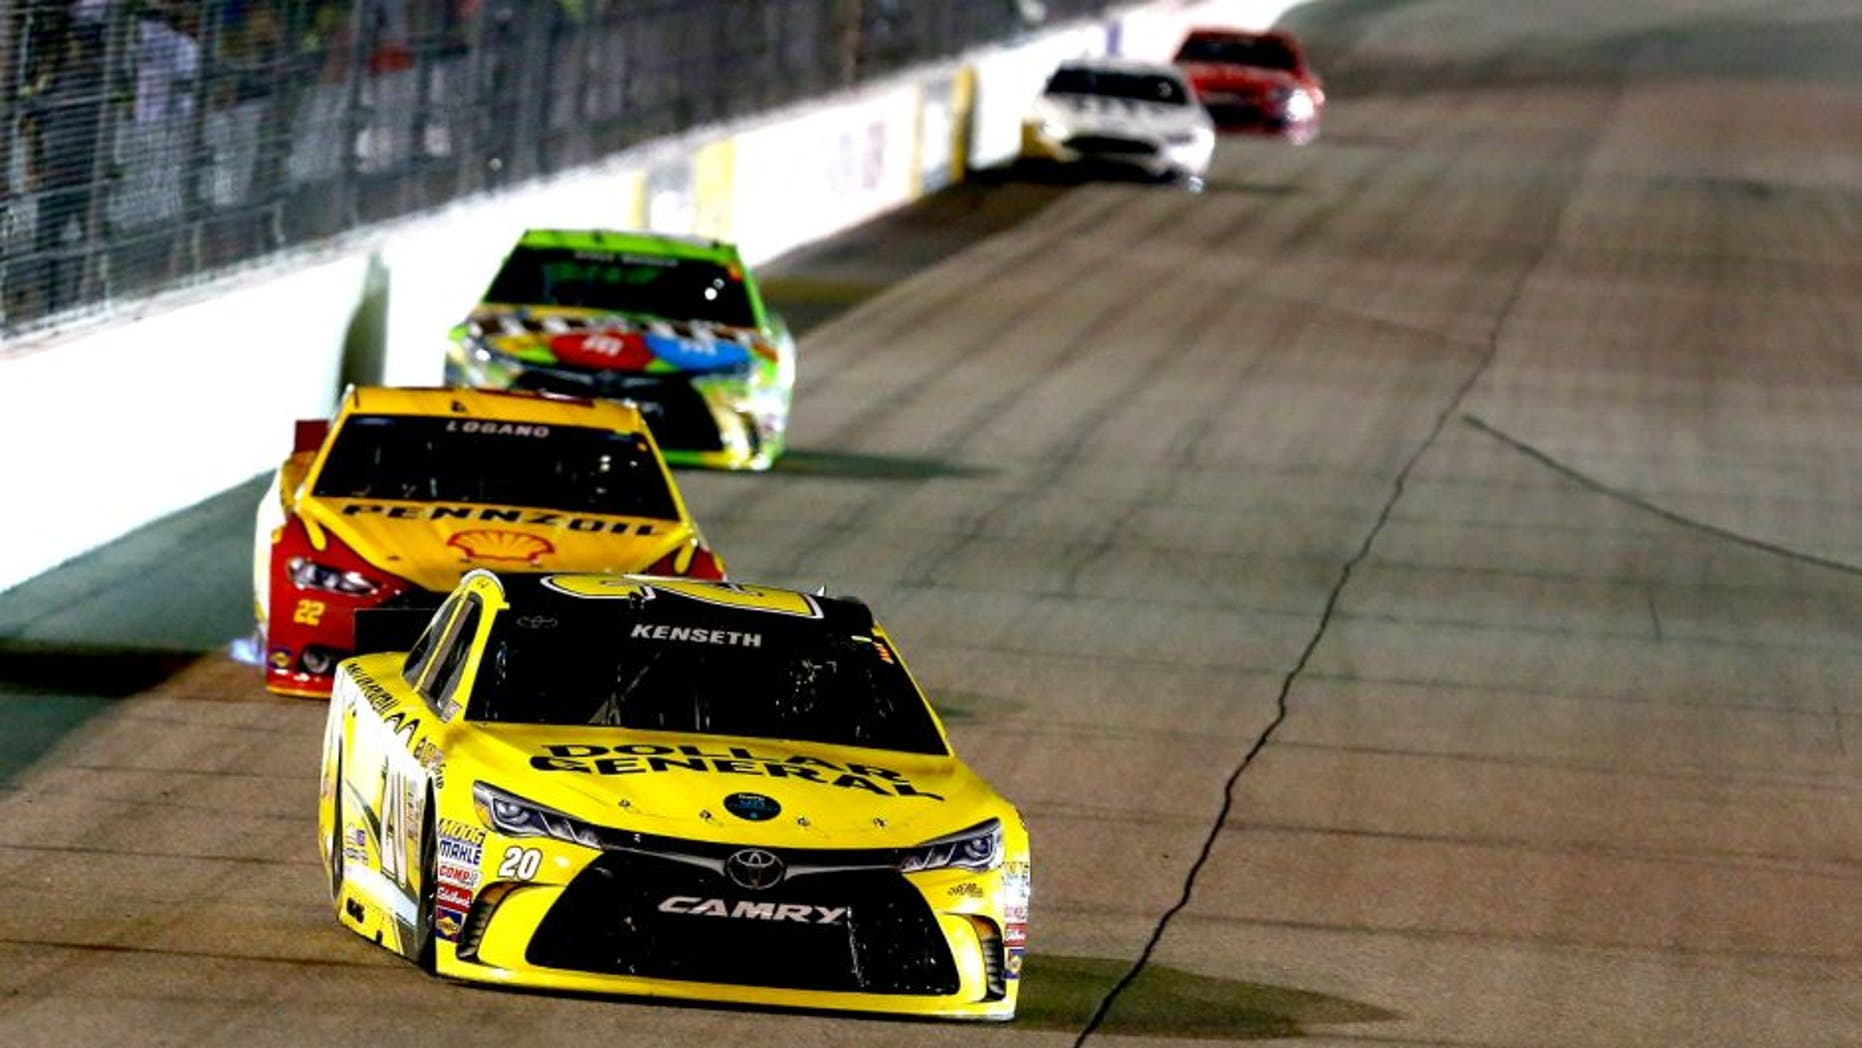 RICHMOND, VA - SEPTEMBER 12: Matt Kenseth, driver of the #20 Dollar General Toyota, leads a pack of cars during the NASCAR Sprint Cup Series Federated Auto Parts 400 at Richmond International Raceway on September 12, 2015 in Richmond, Virginia. (Photo by Sarah Crabill/Getty Images)